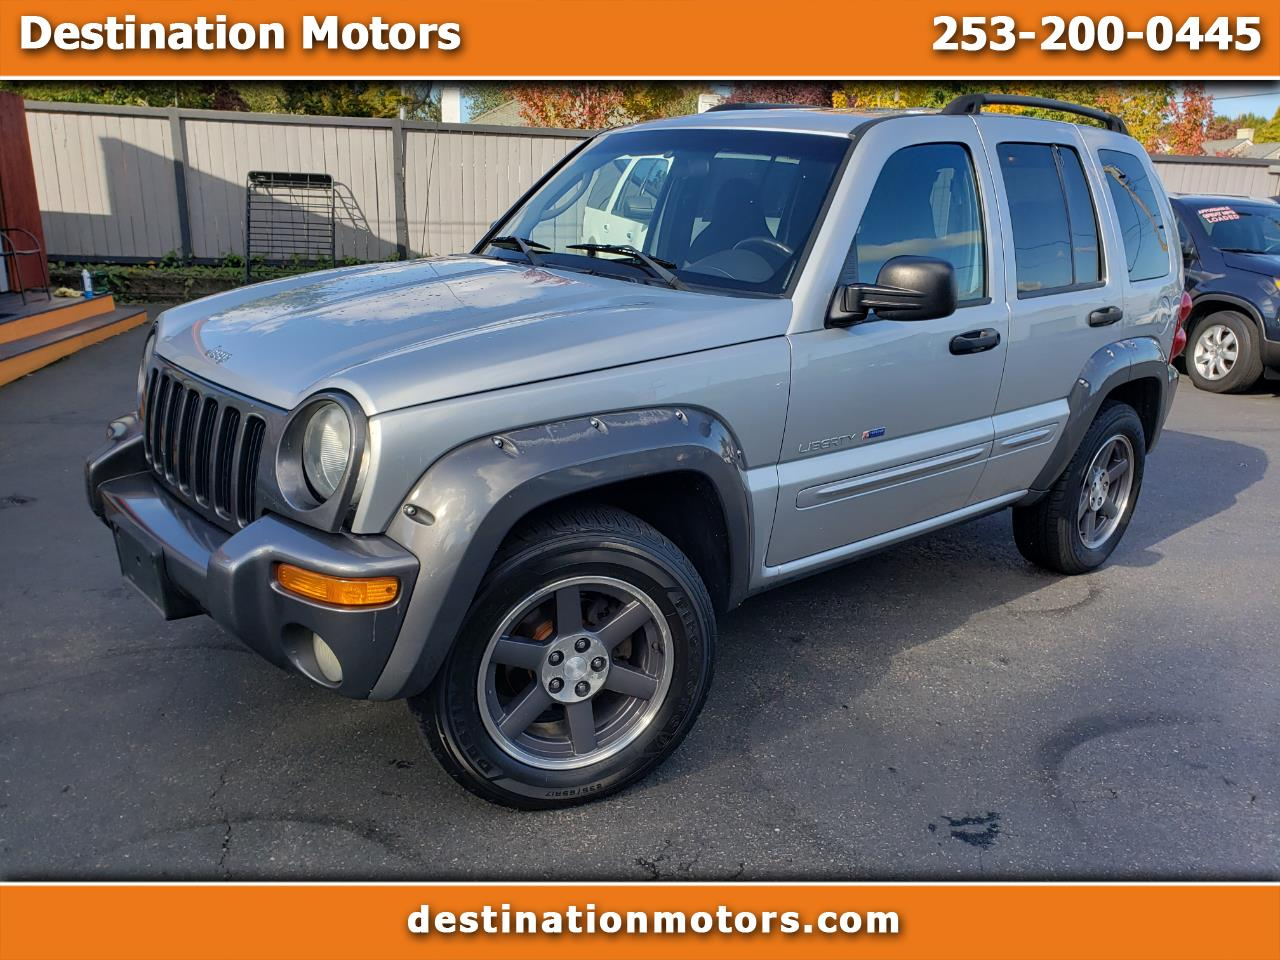 2003 Jeep Liberty Sport Freedom Edition 4WD